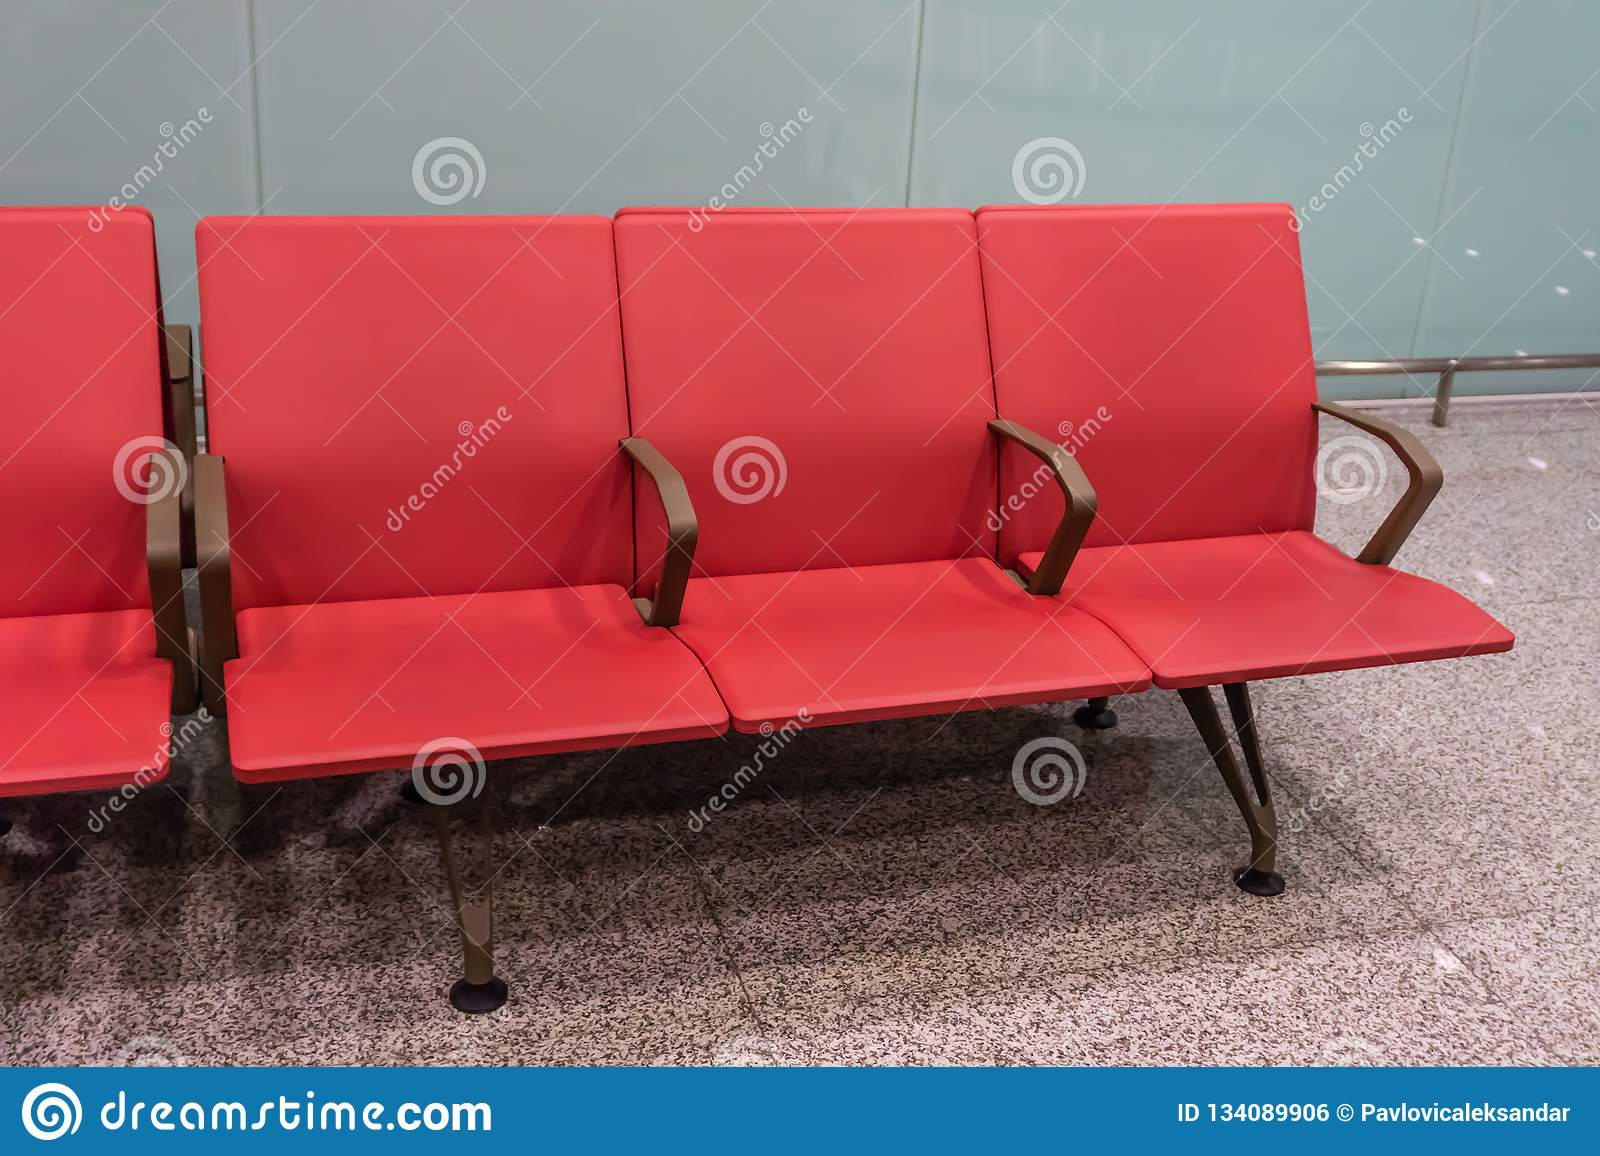 Airport Seating Row